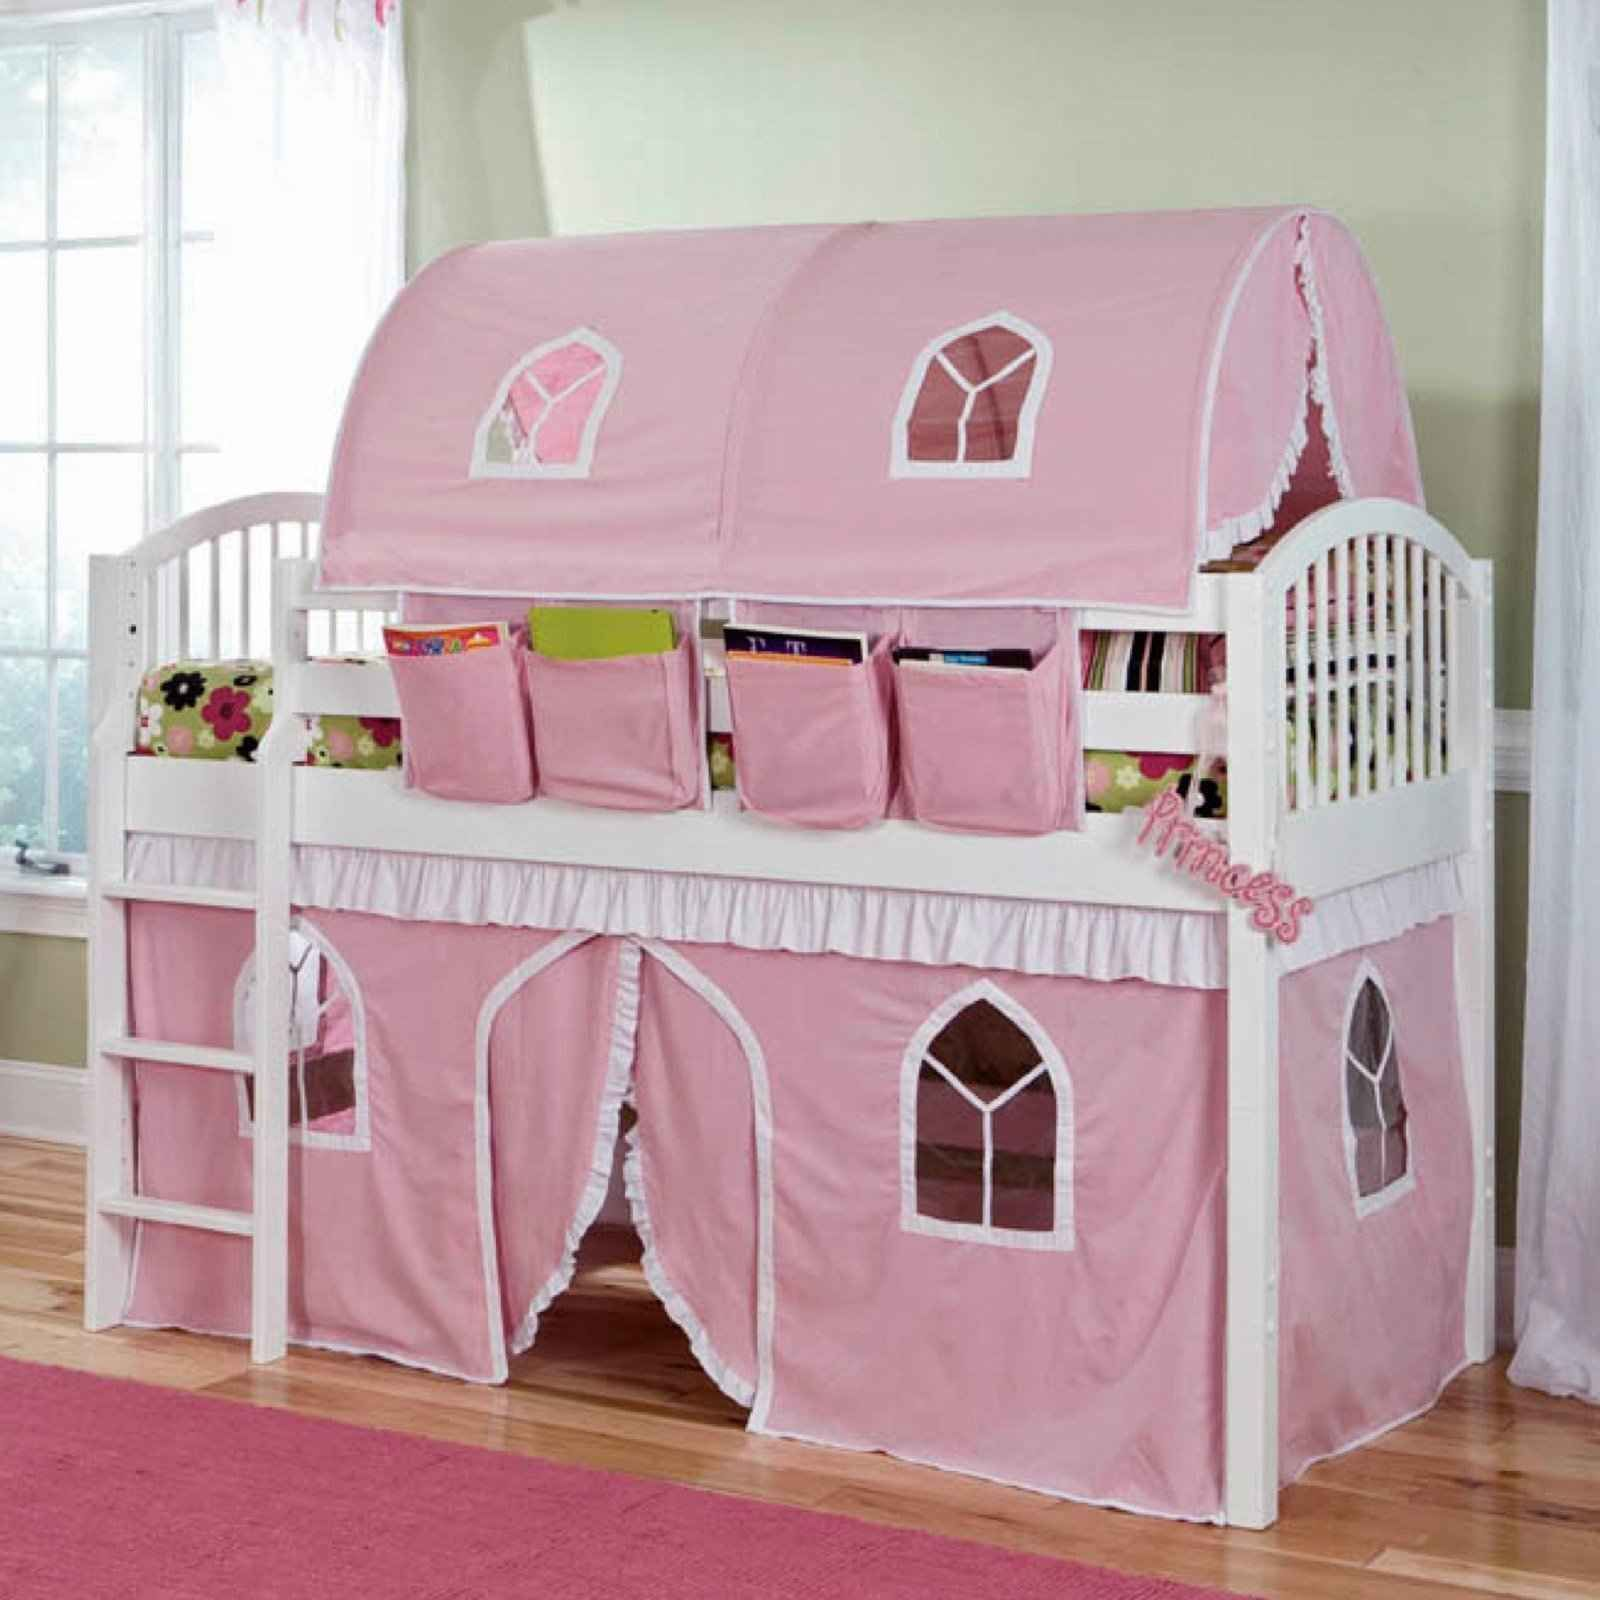 Girls Castle Tent Canopy Beds Wouldn T Take Up The Whole Room